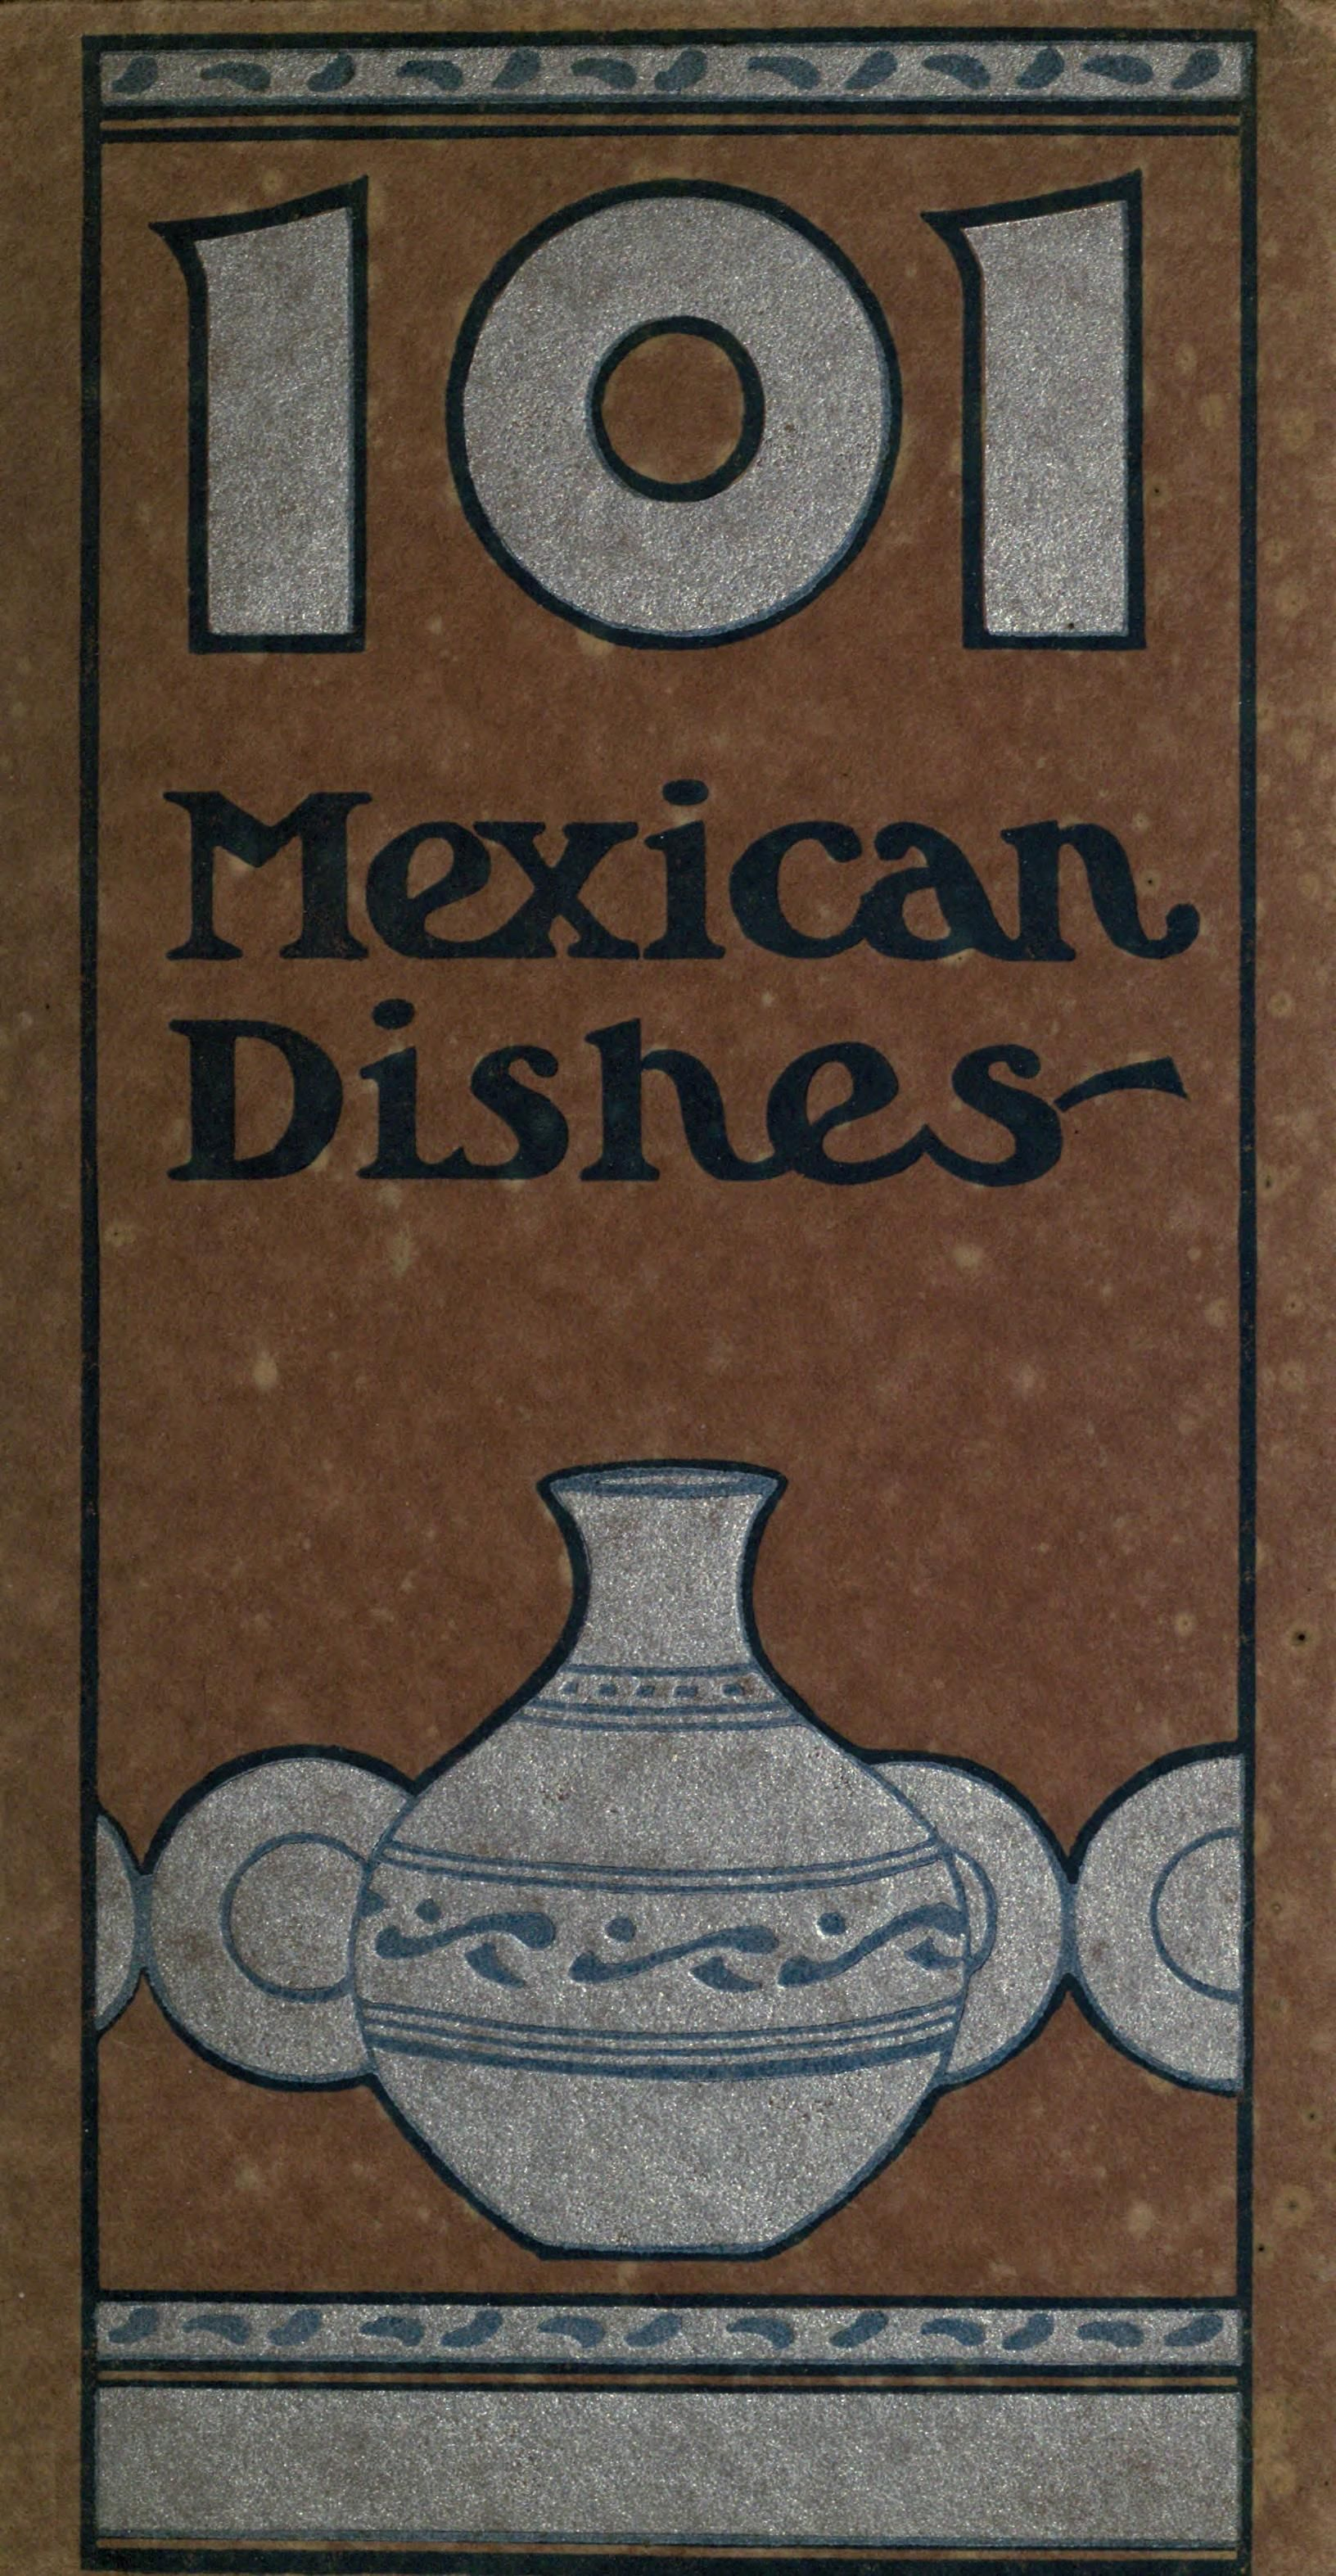 One hundred & one Mexican dishes #mexicancooking